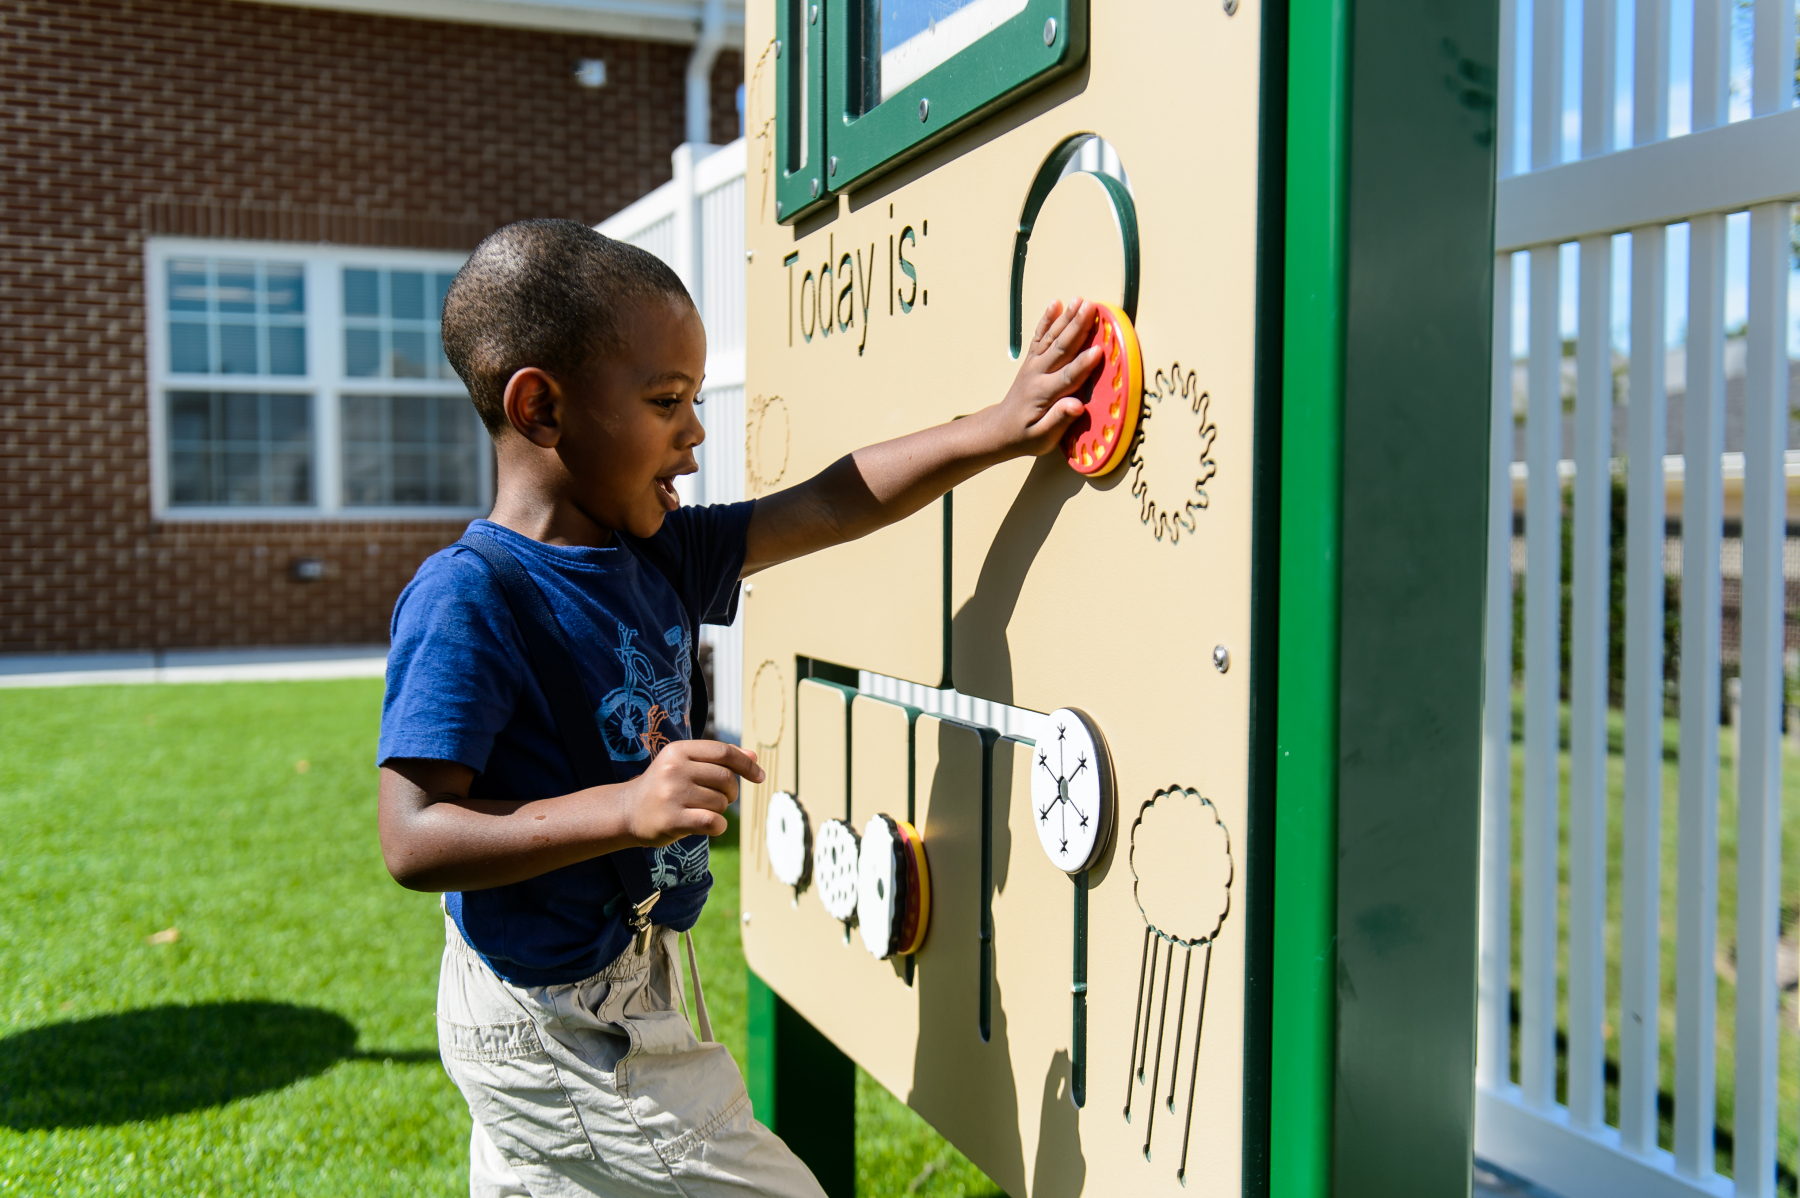 The-Goddard-School-MD-Science-Math-Pre-School-Weather-Station-View-07